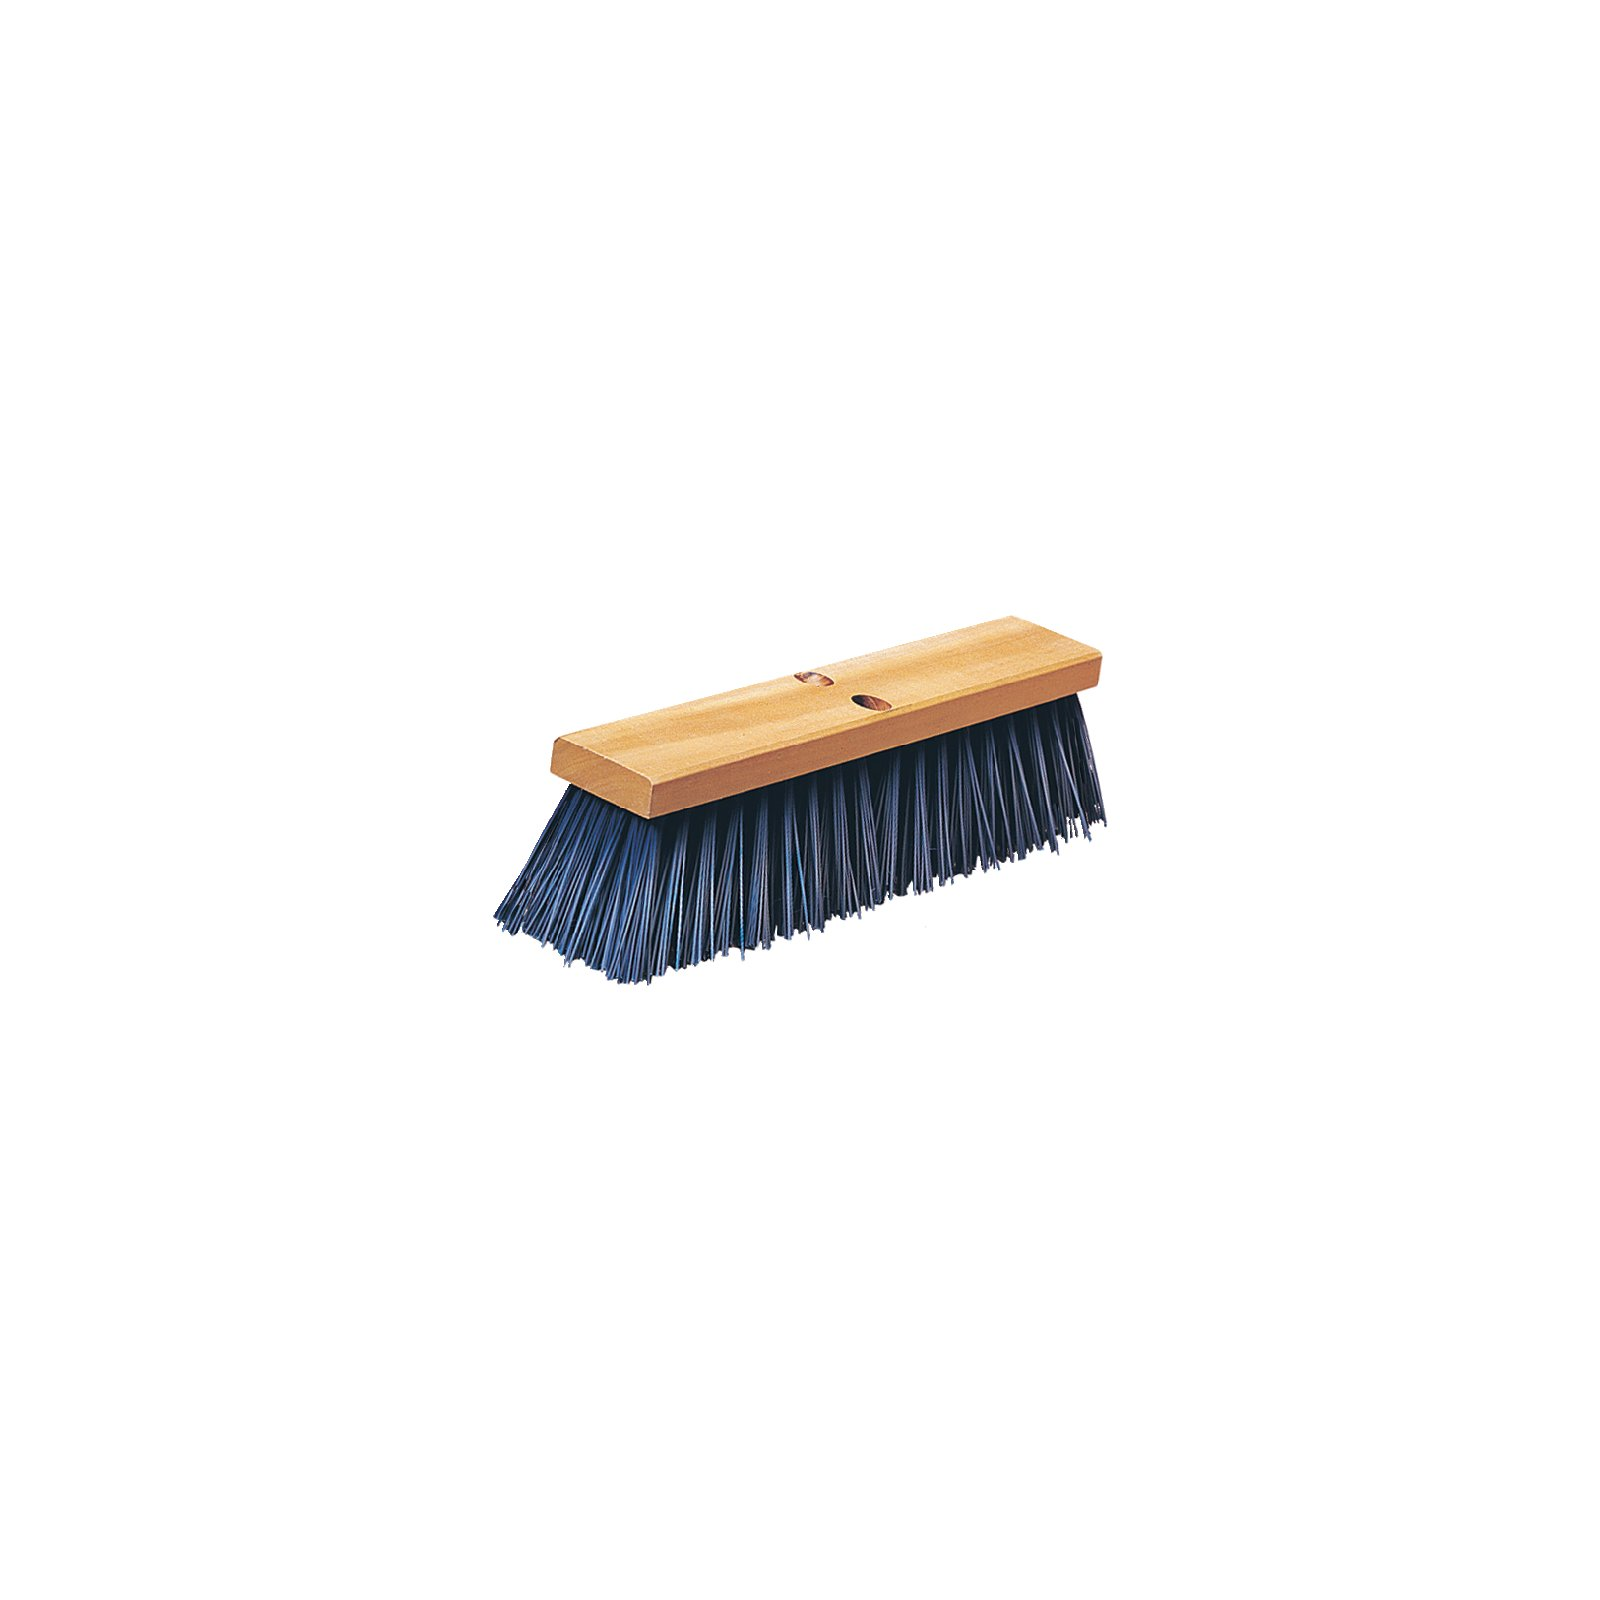 BROOM HEAVY STREET SWEEP HARDWOOD BLOCK 24""